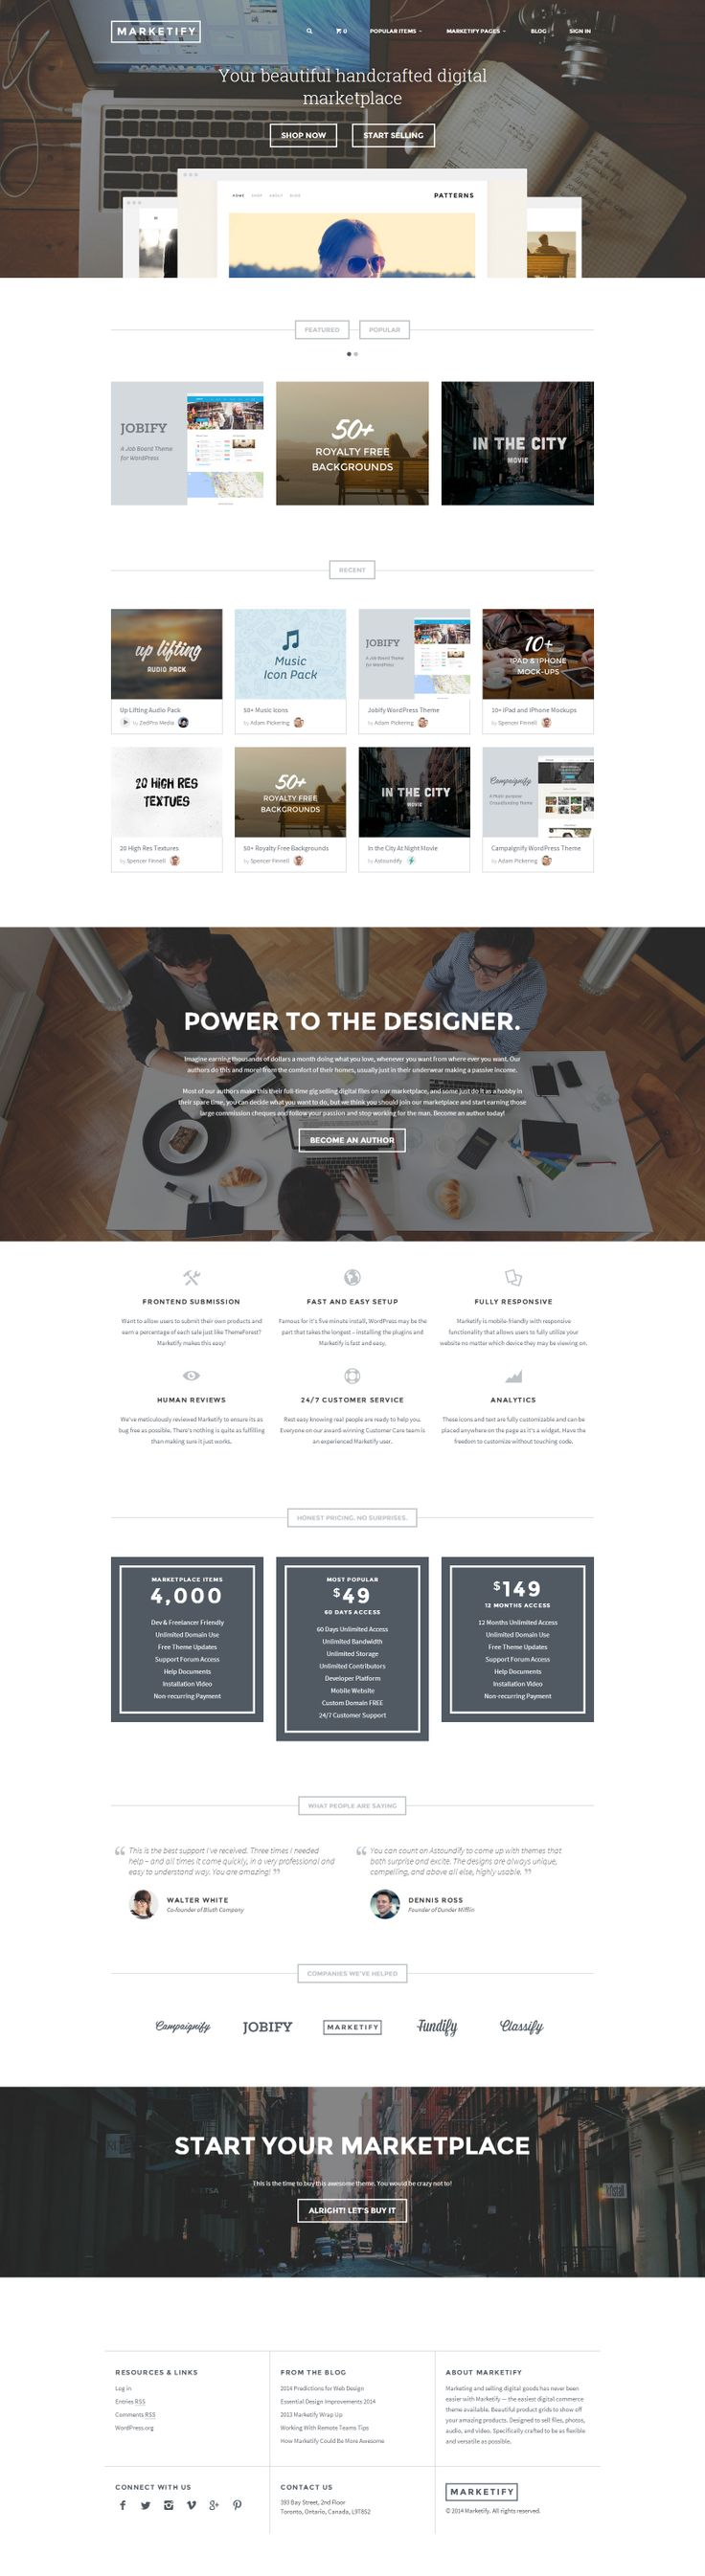 427 best Web Store images on Pinterest | Business, Shop and Website